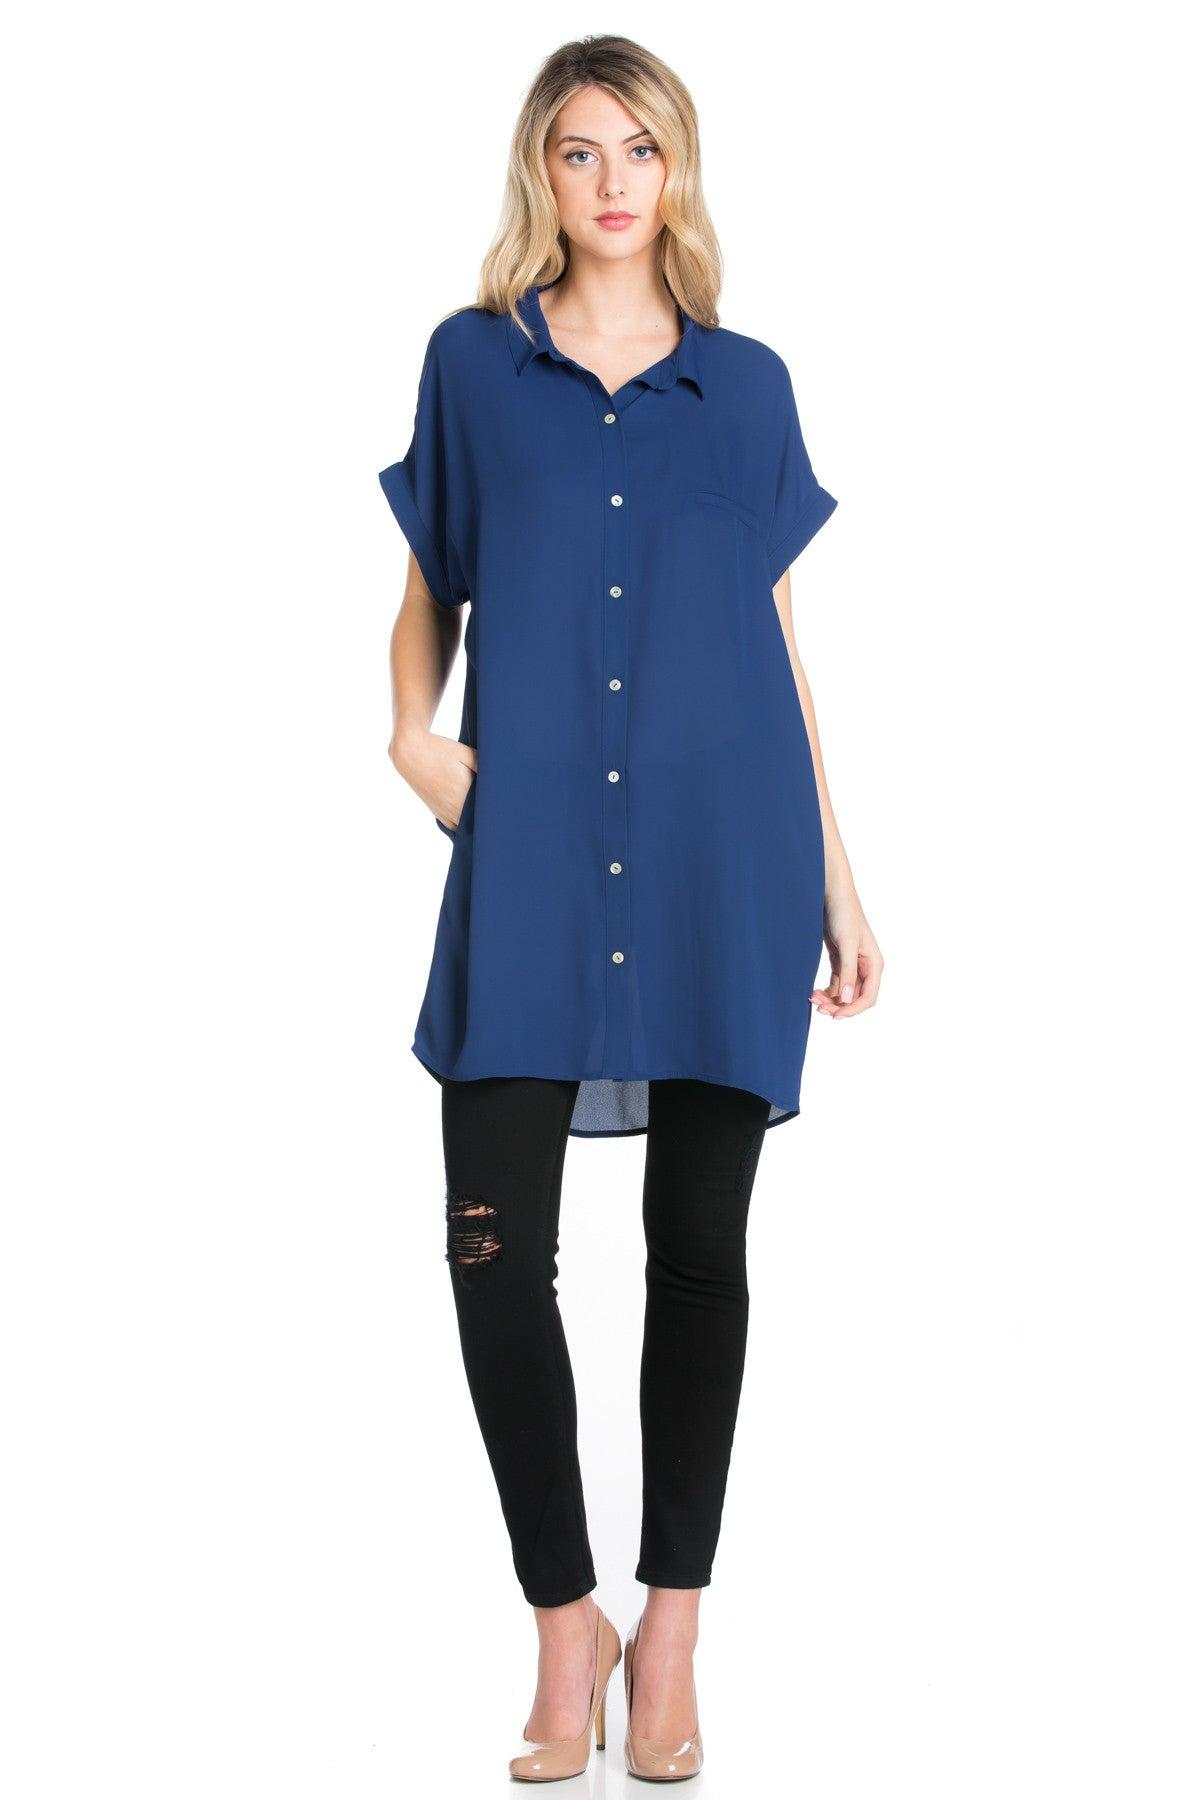 Short Sleeve Longline Button Down Chiffon Top in Midnight Blue - Tops - My Yuccie - 5